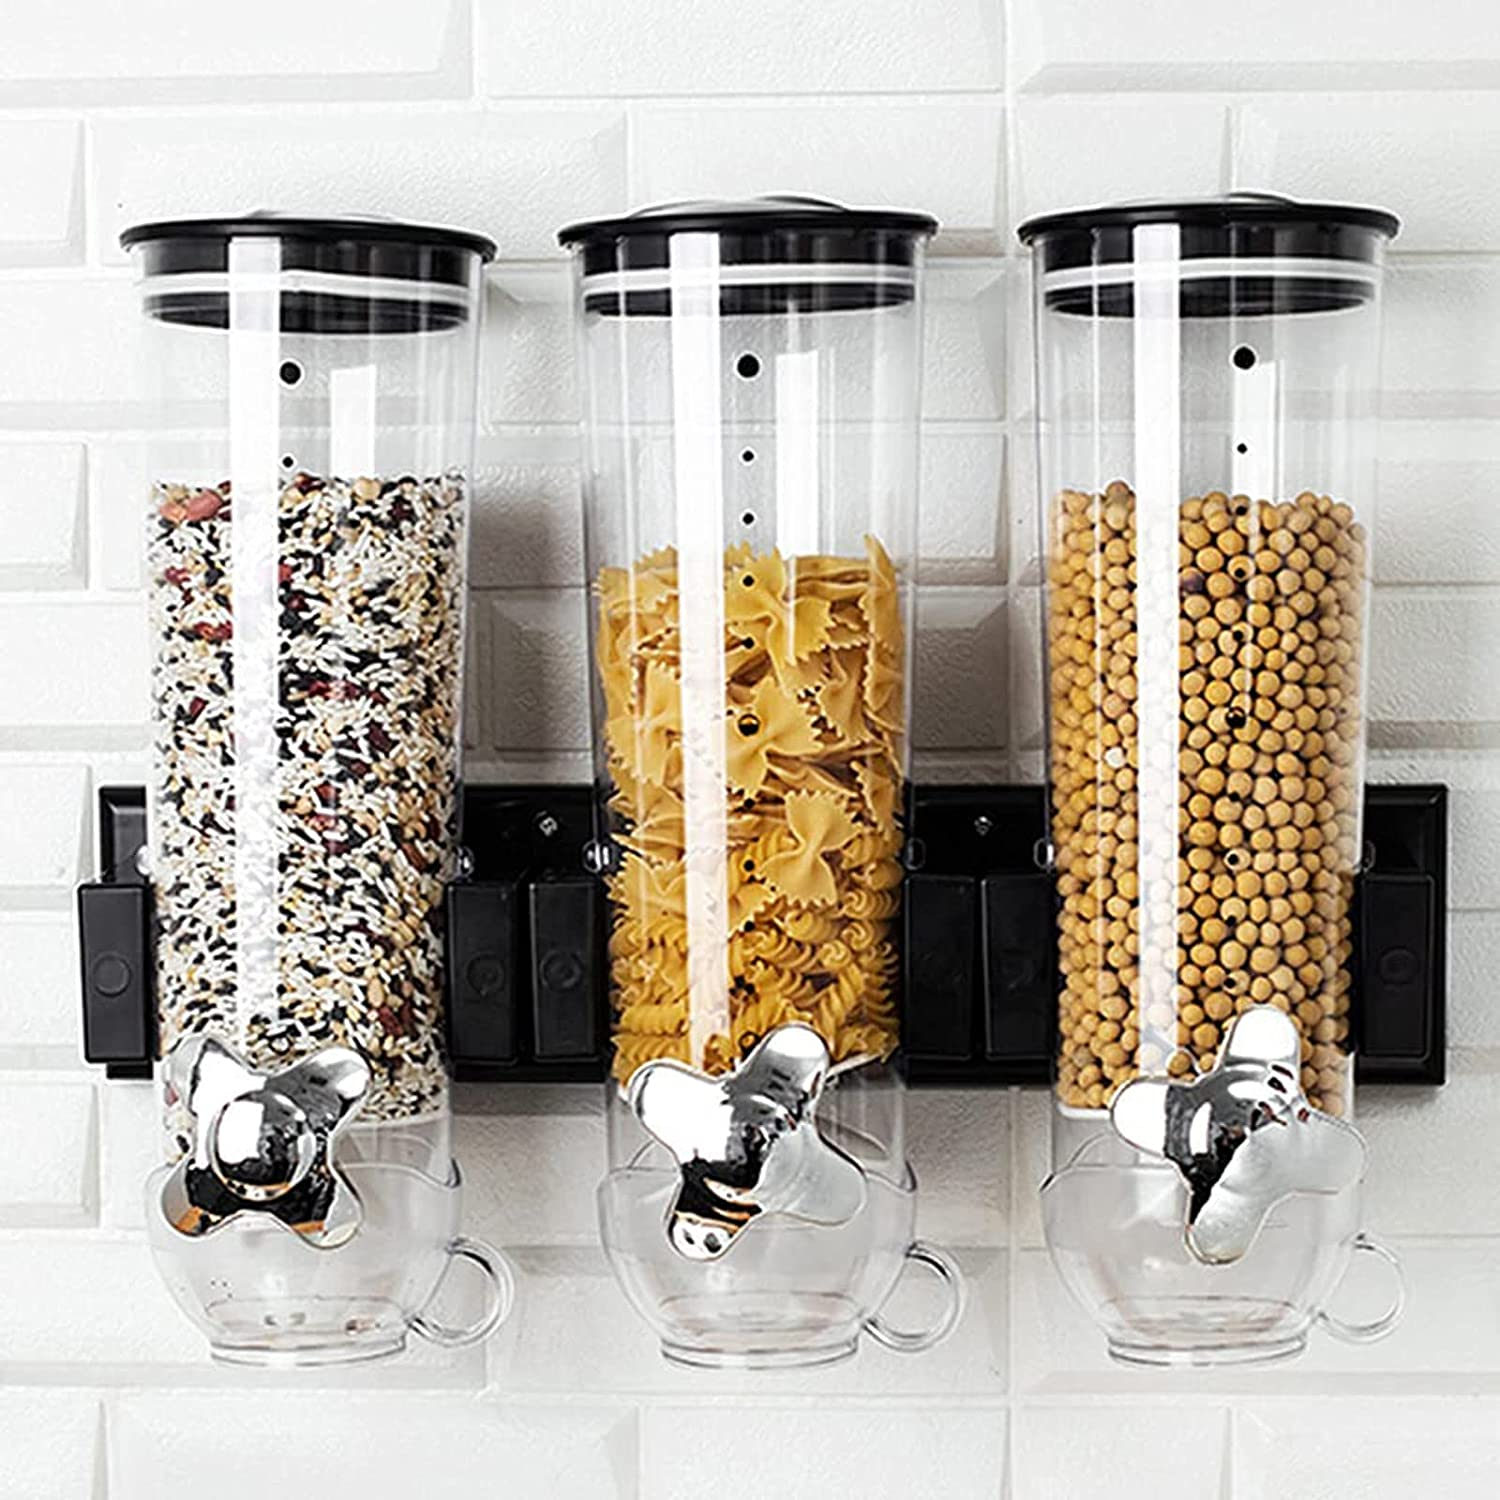 N B Food Dispensers 2 Pack Cereal half Dry Max 89% OFF Con Mount Dispenser Wall